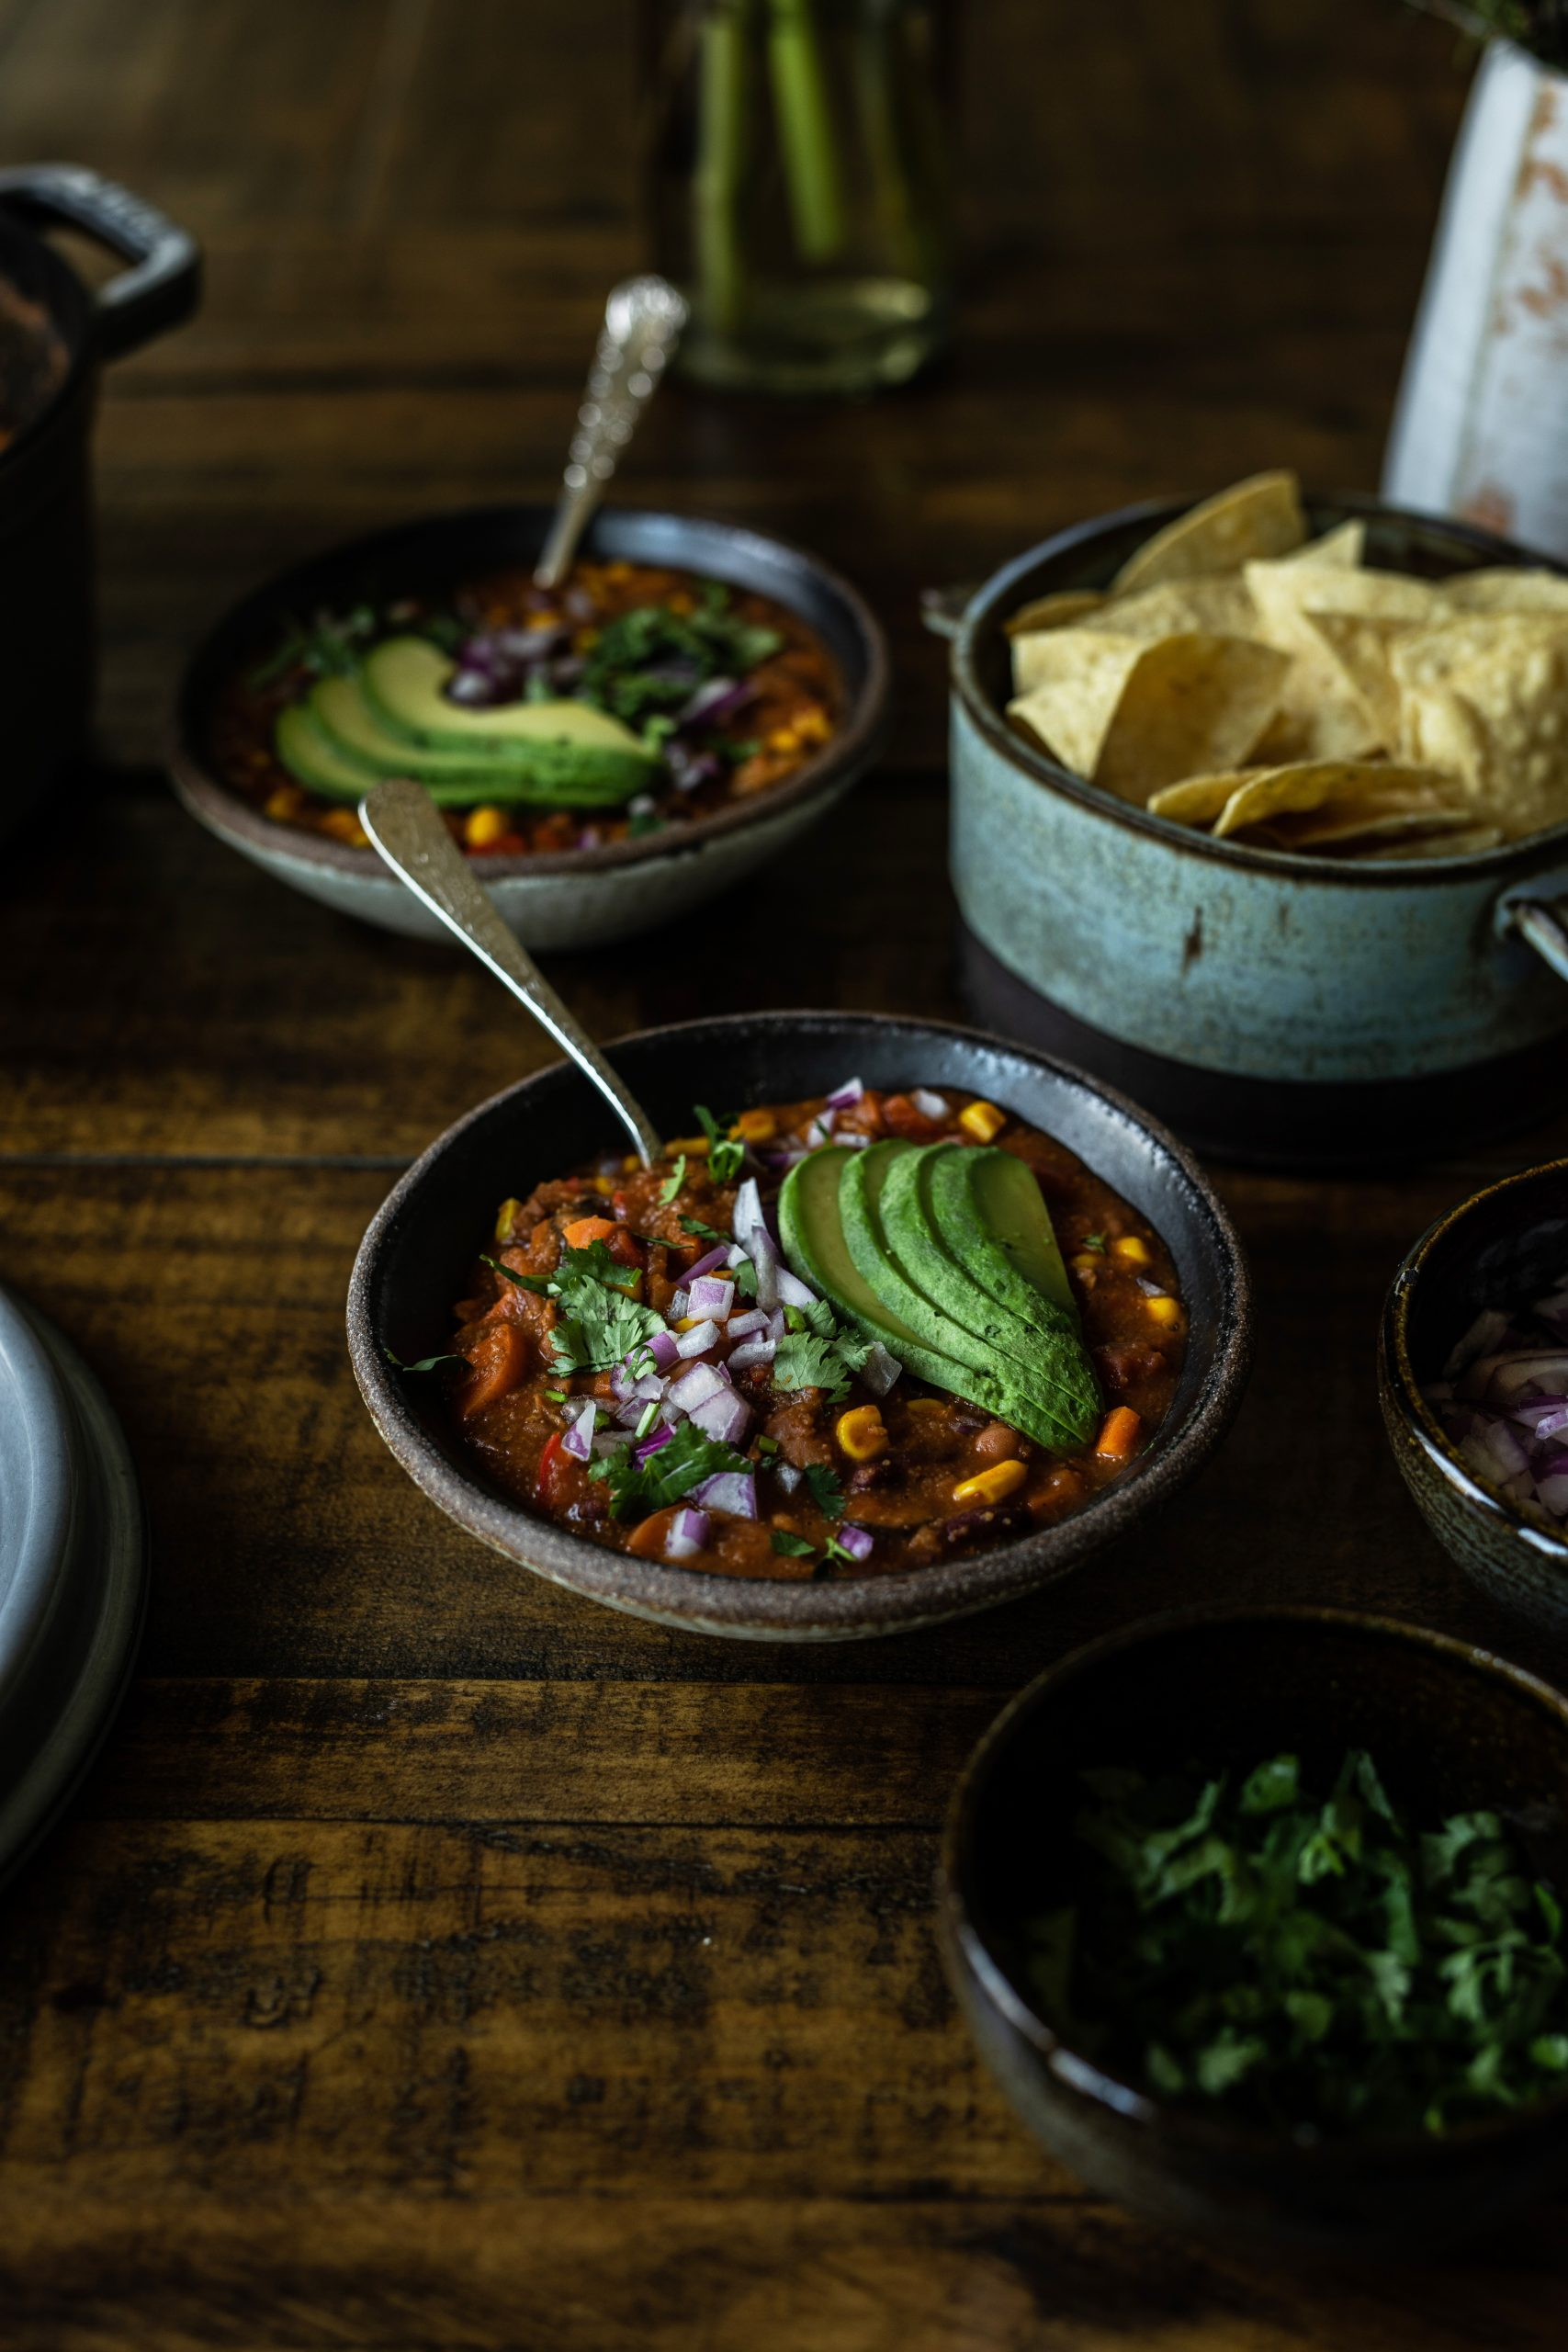 Vegan Mexican Chili made with Teff Grain